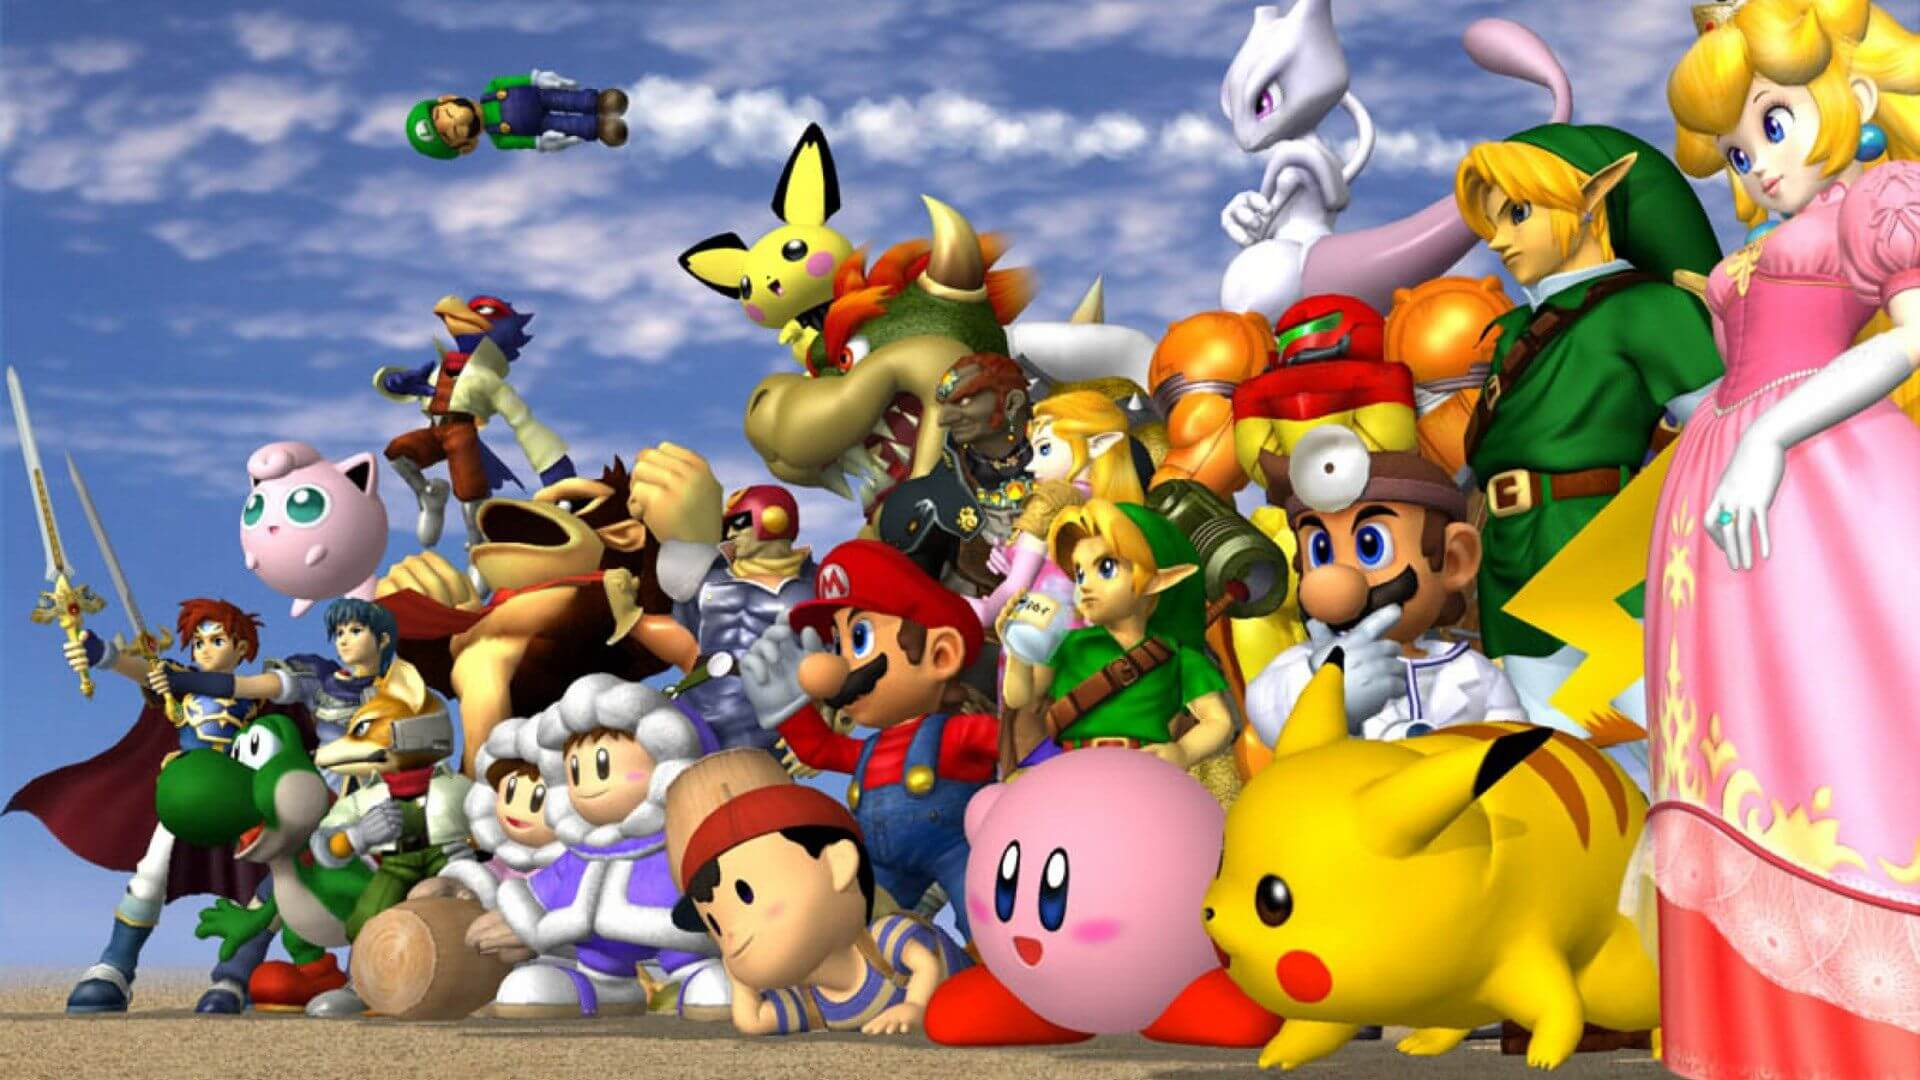 Gamers wait for announcement of update to Super Smash Bros. Ultimate